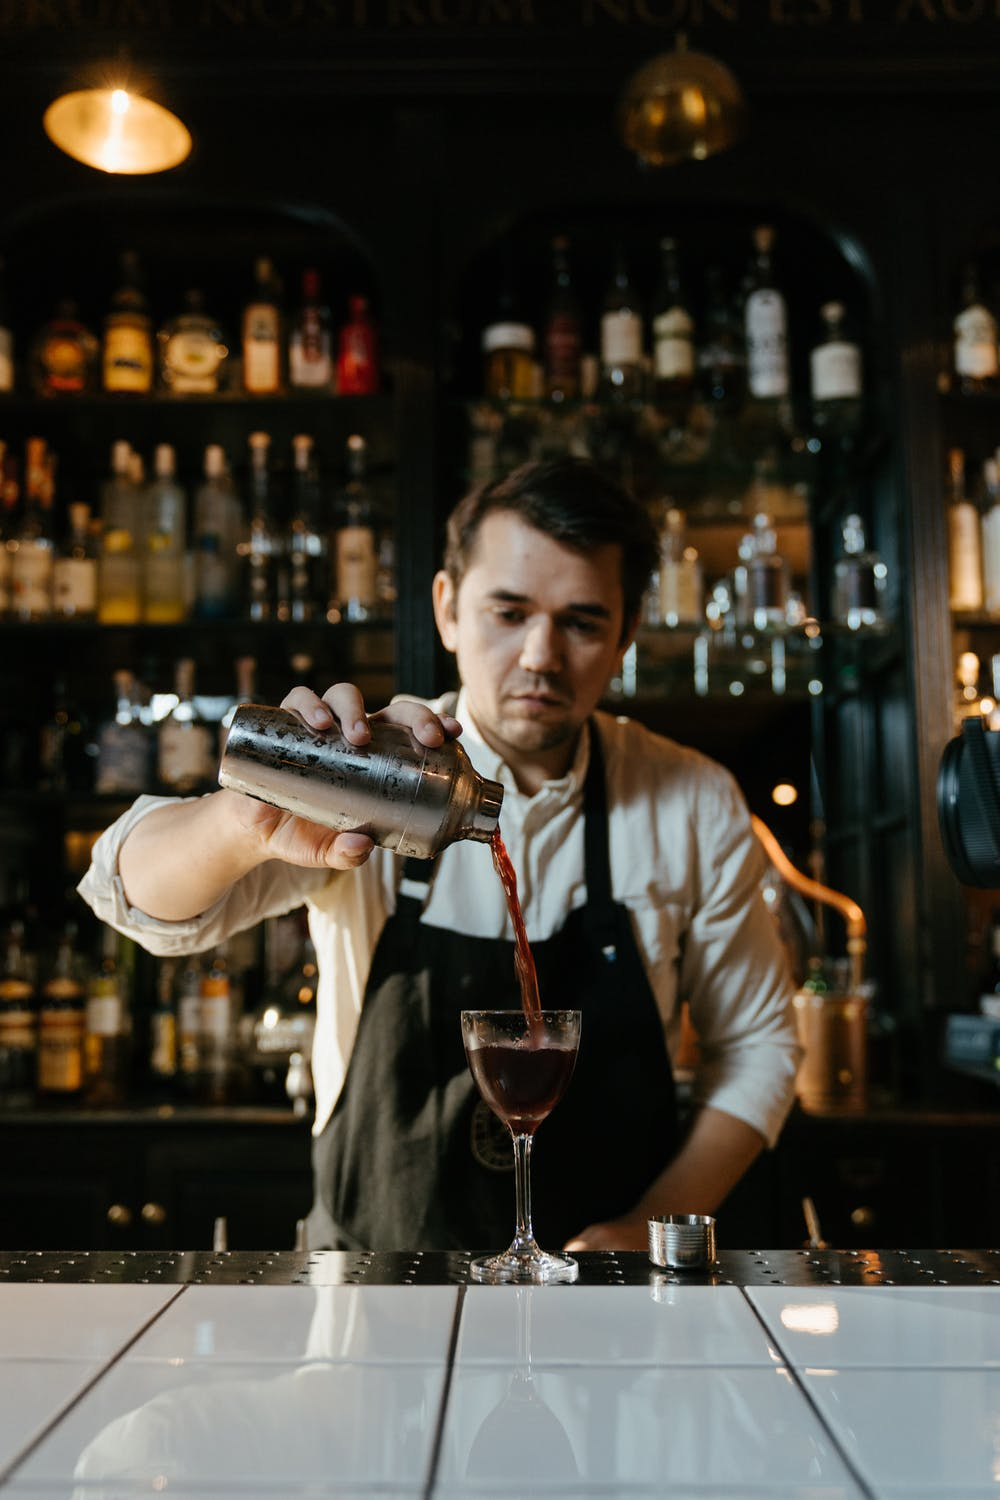 A bartender holding the bottle and drinking glass.   Photo: Pexels